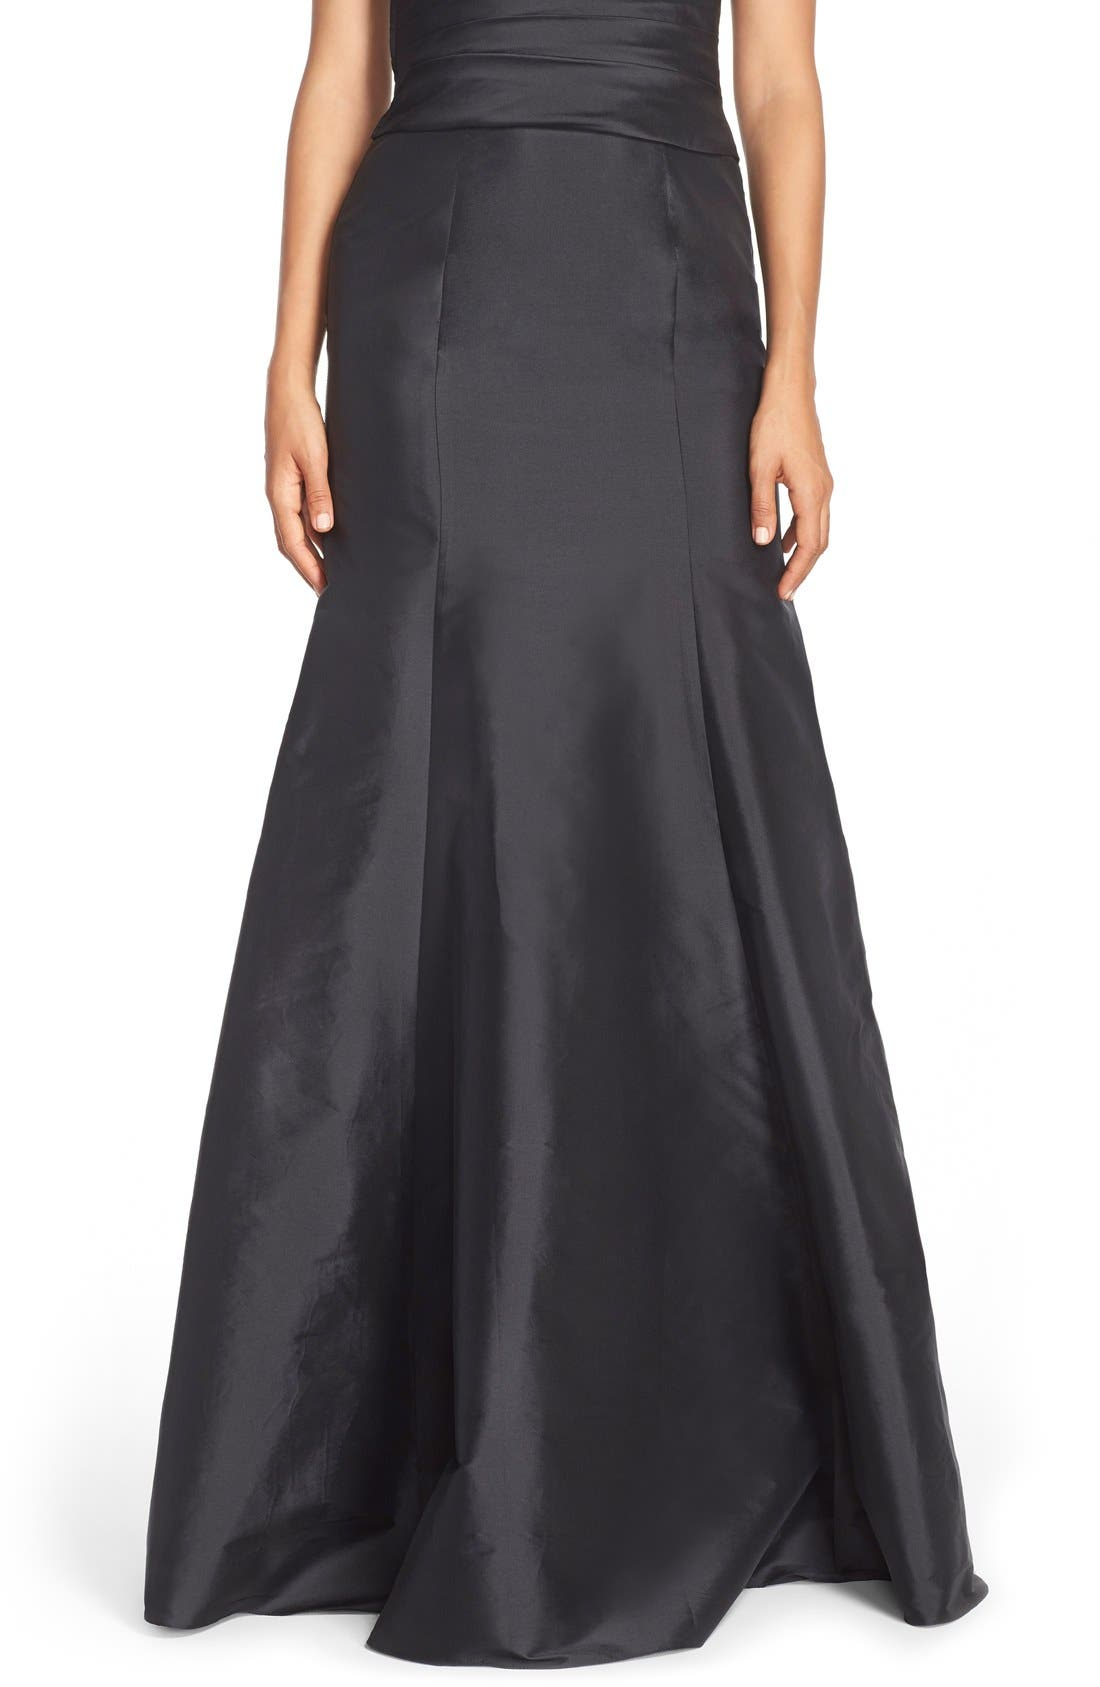 MONIQUE LHUILLIER BRIDESMAIDS Floor Length Taffeta Mermaid Skirt, Main, color, 001